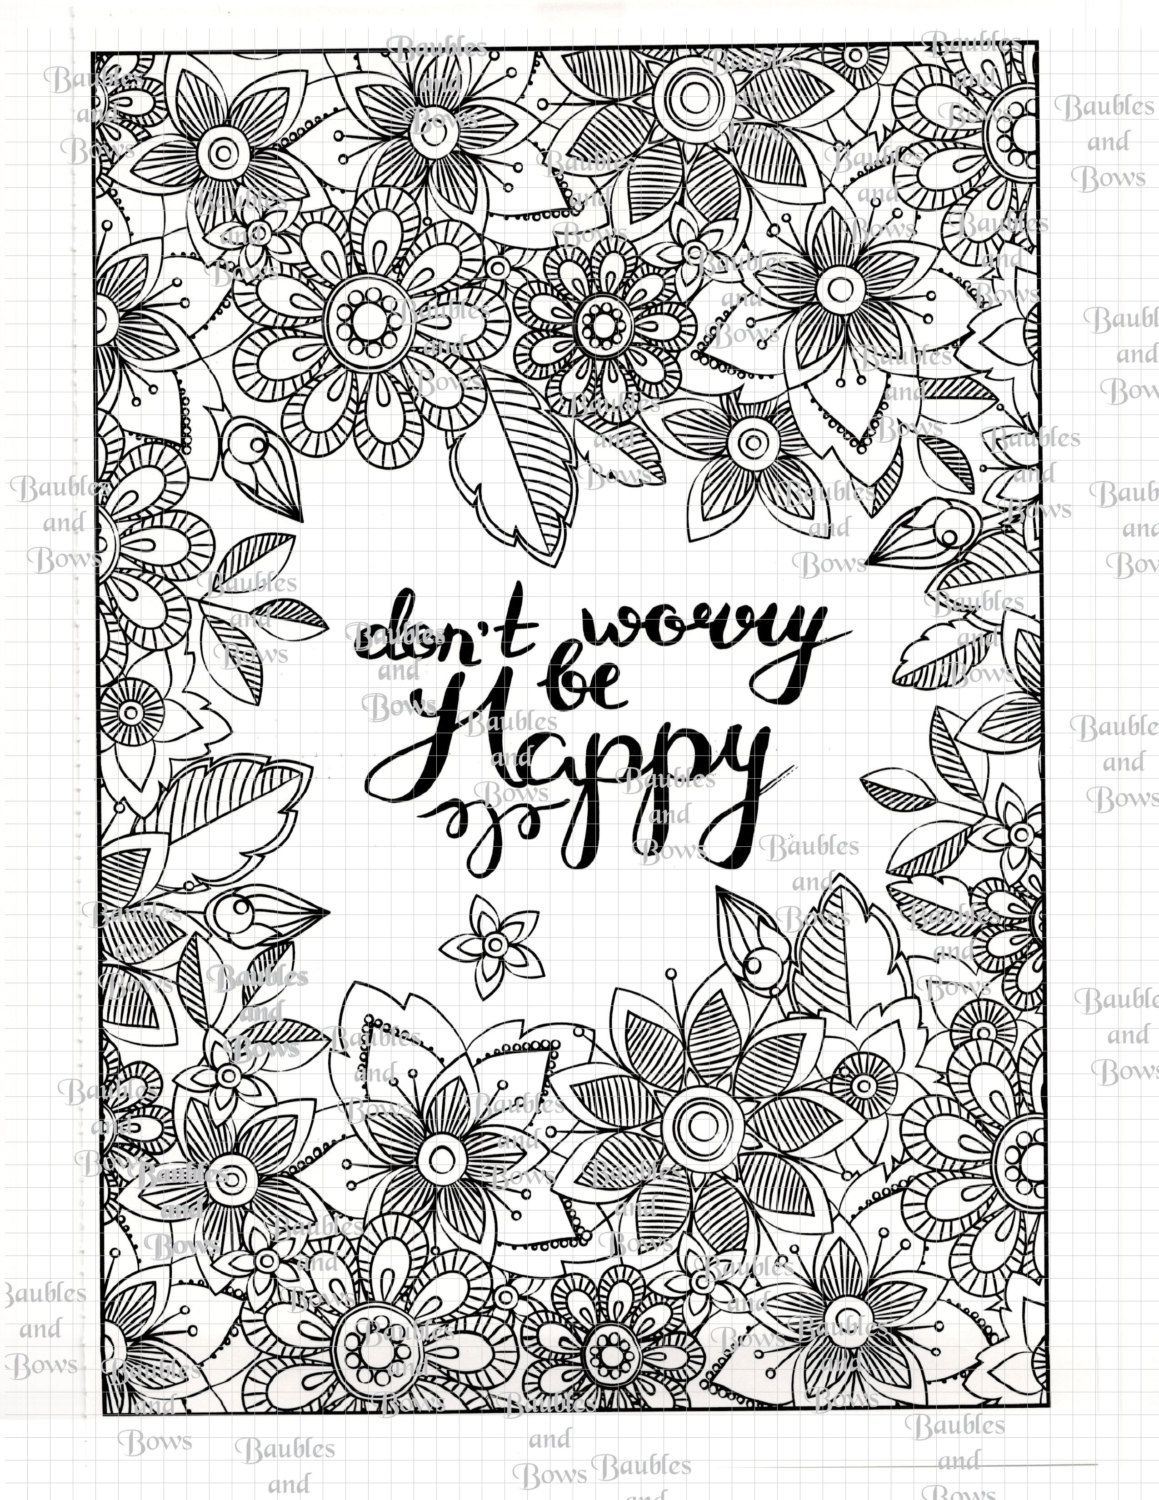 Mandala coloring pages art therapy recovery - Be Happy Printable Adult Mandala Coloring Page Digital By Sewlacee